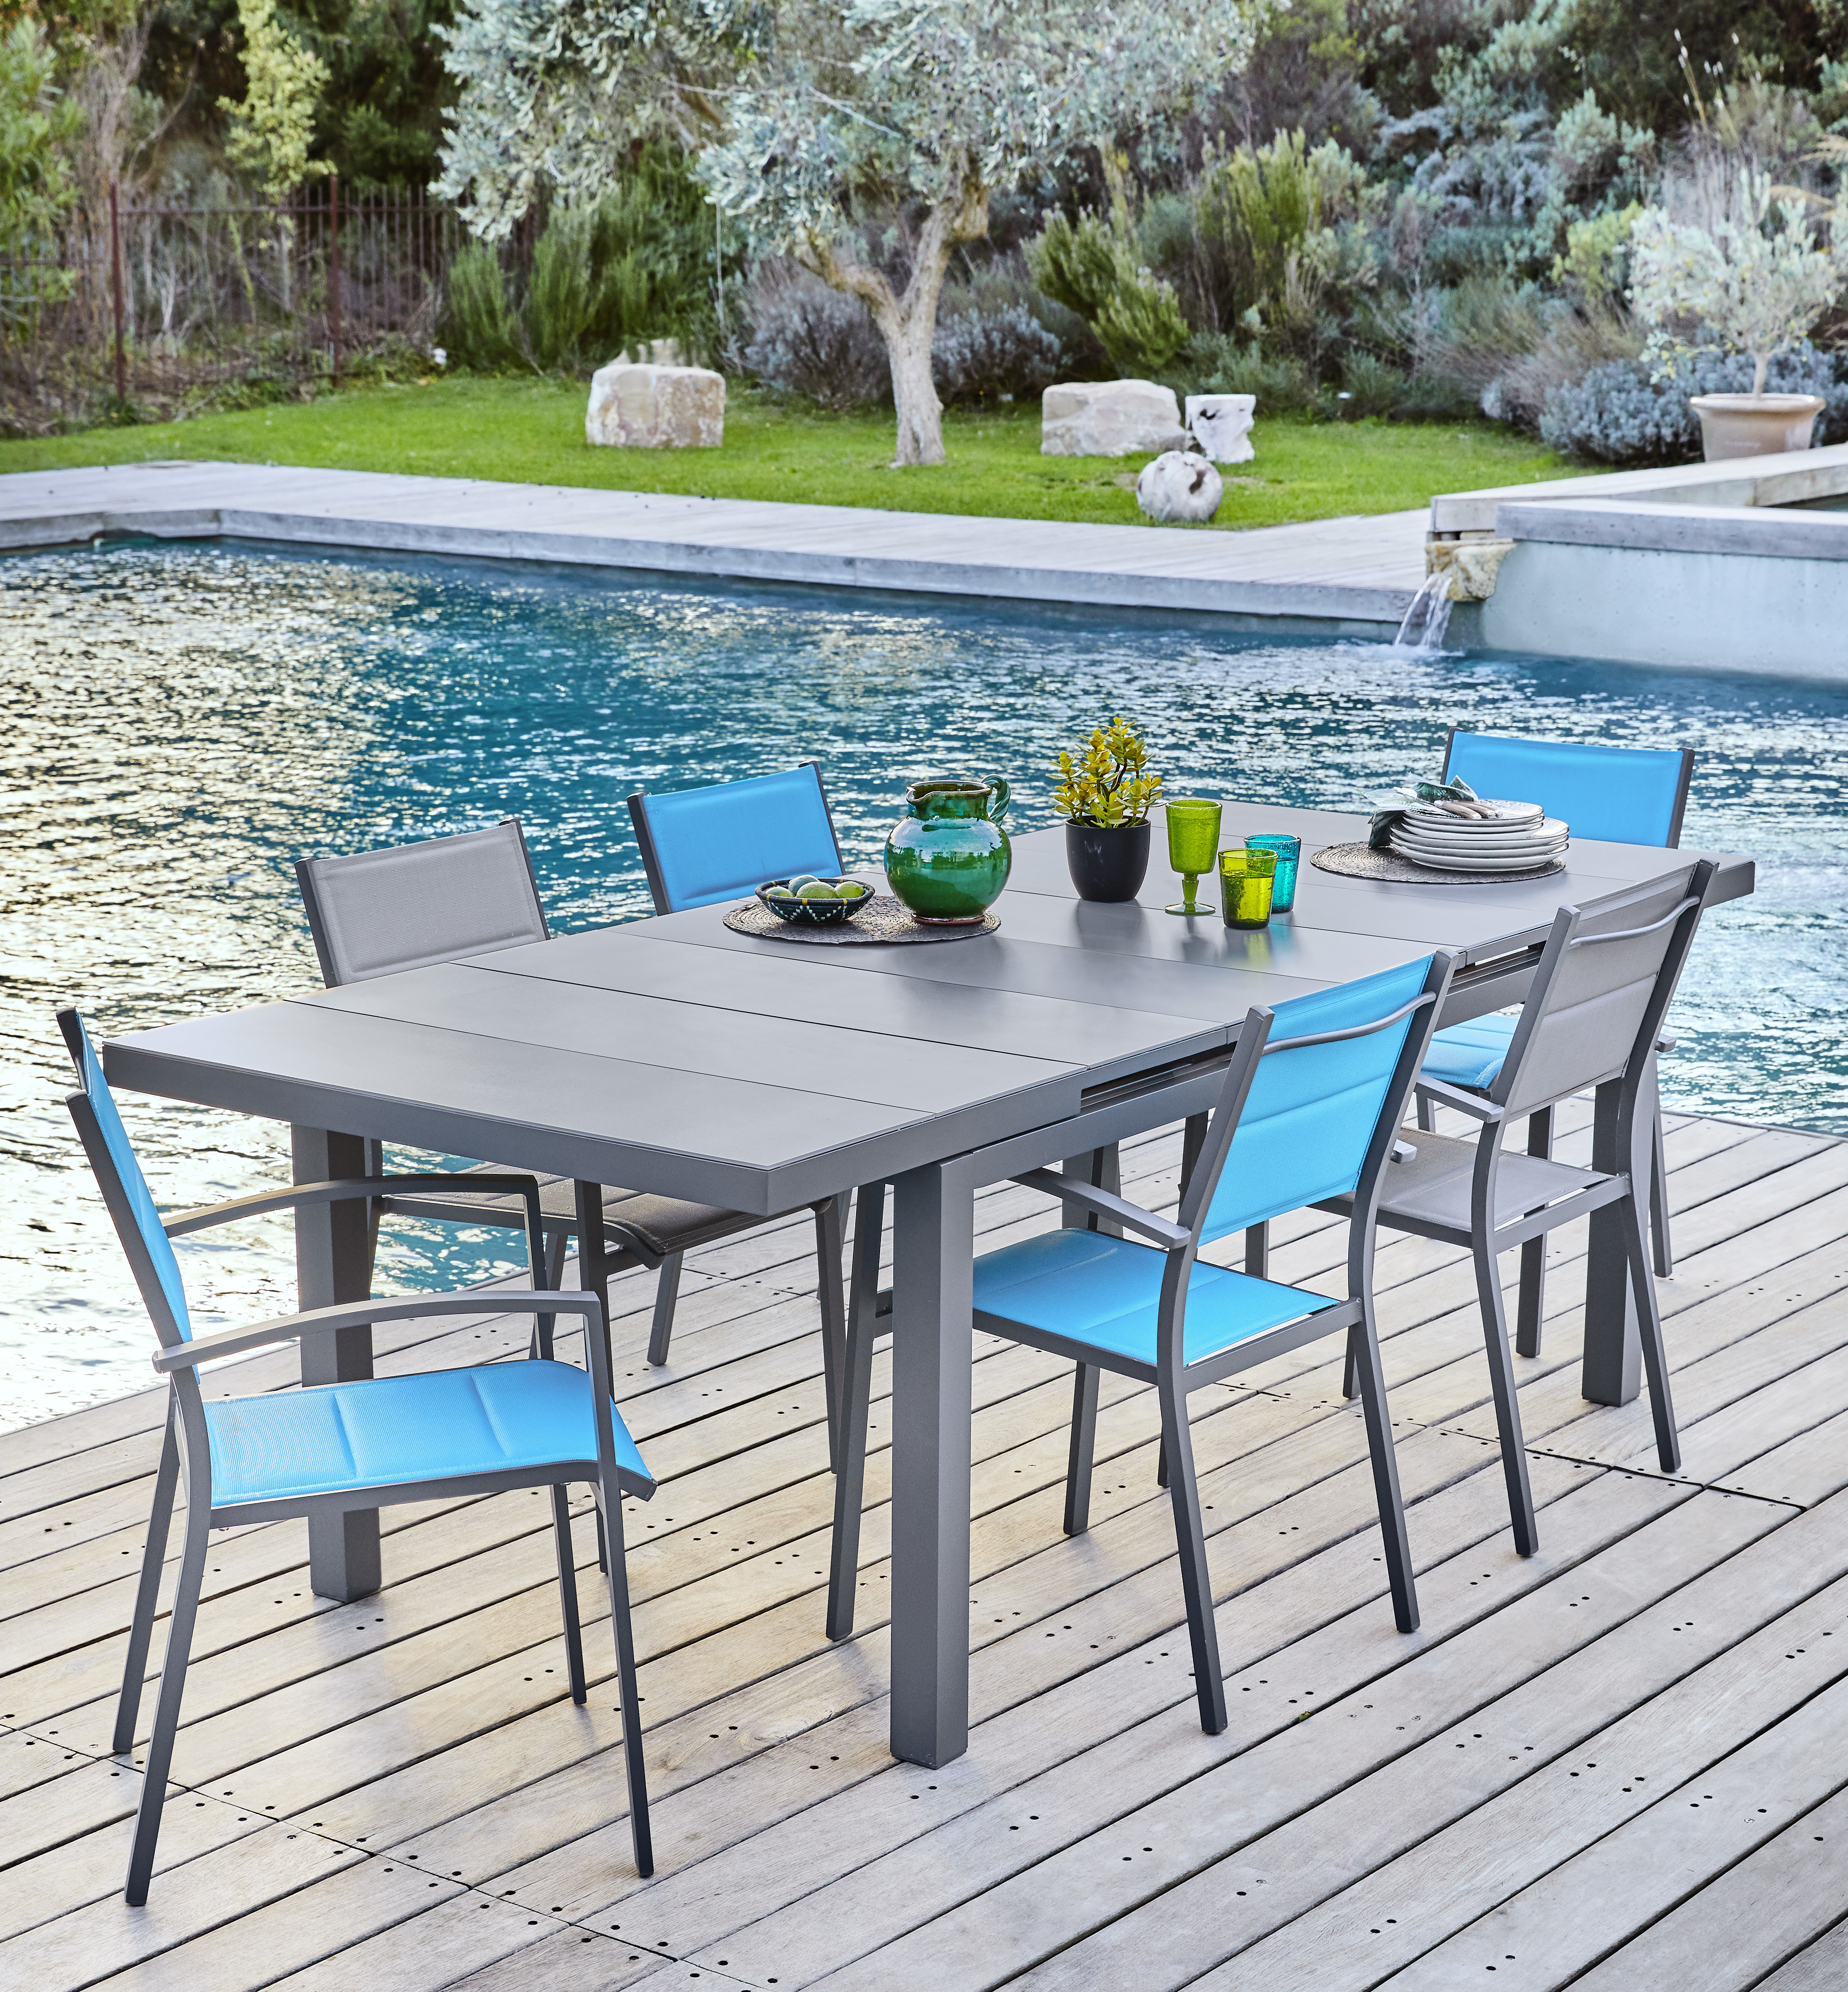 Table De Jardin En Teck Carrefour Hyba Table Canberra Allonge Automatique Gris 100cm X 180cm X